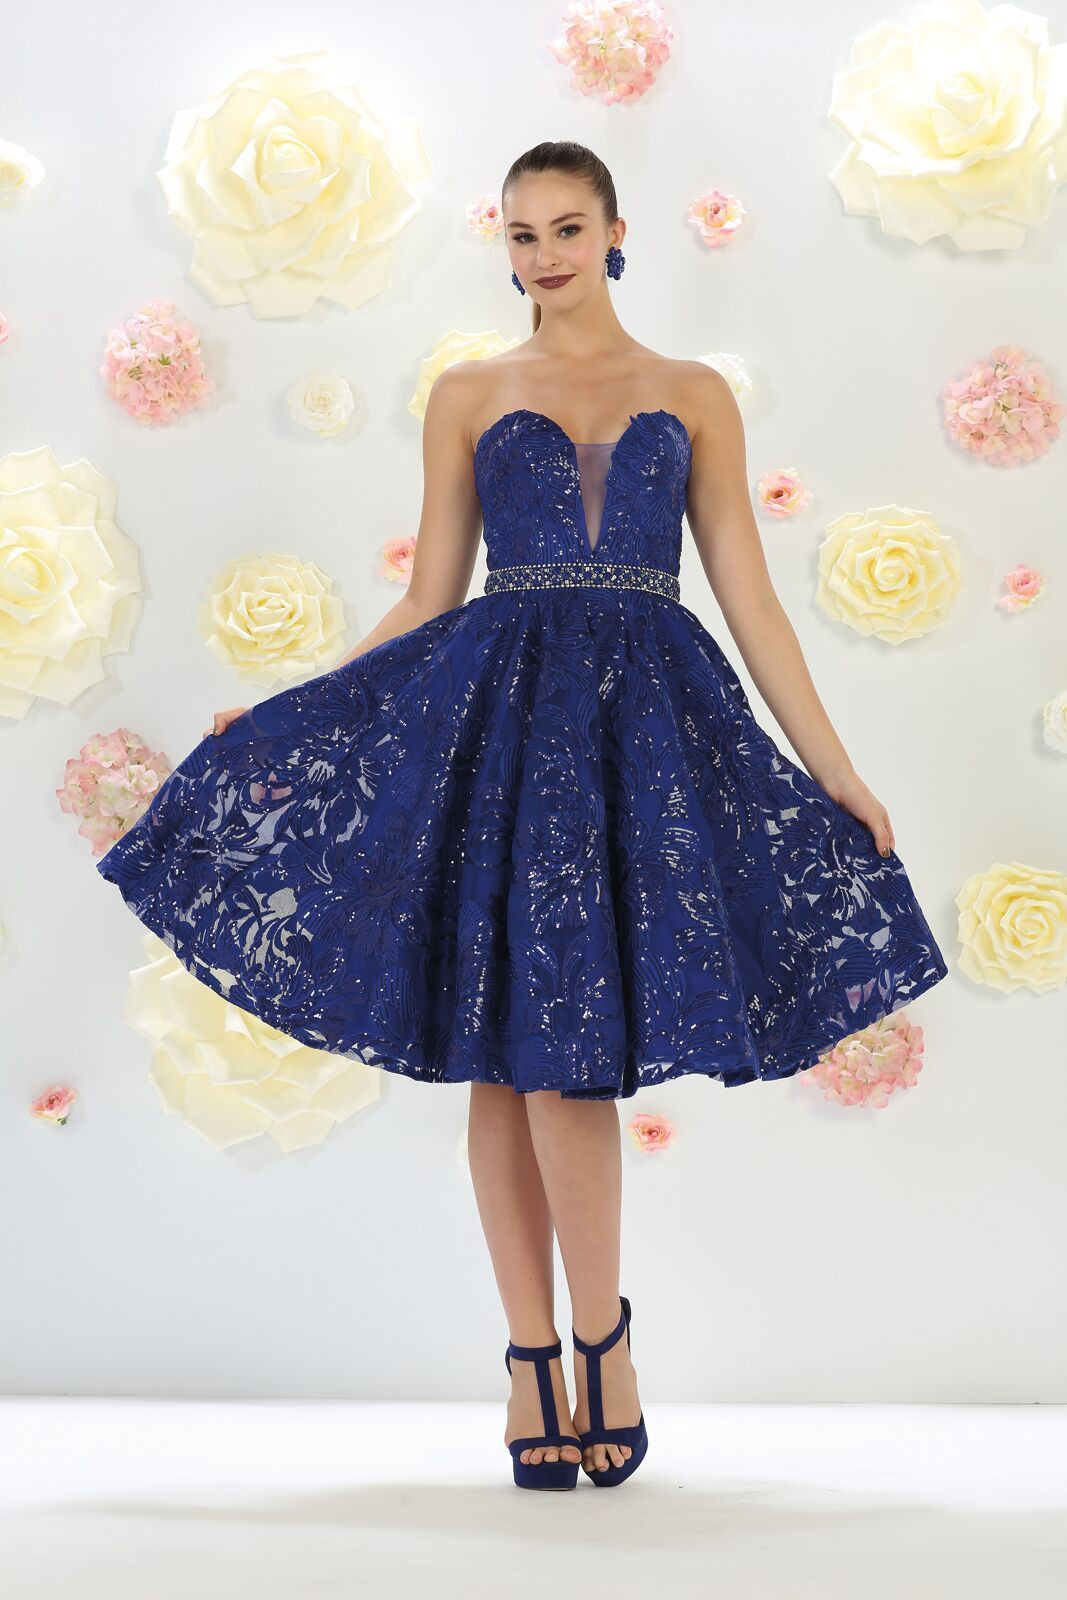 Prom short dress homecoming bridesmaids cocktail party products